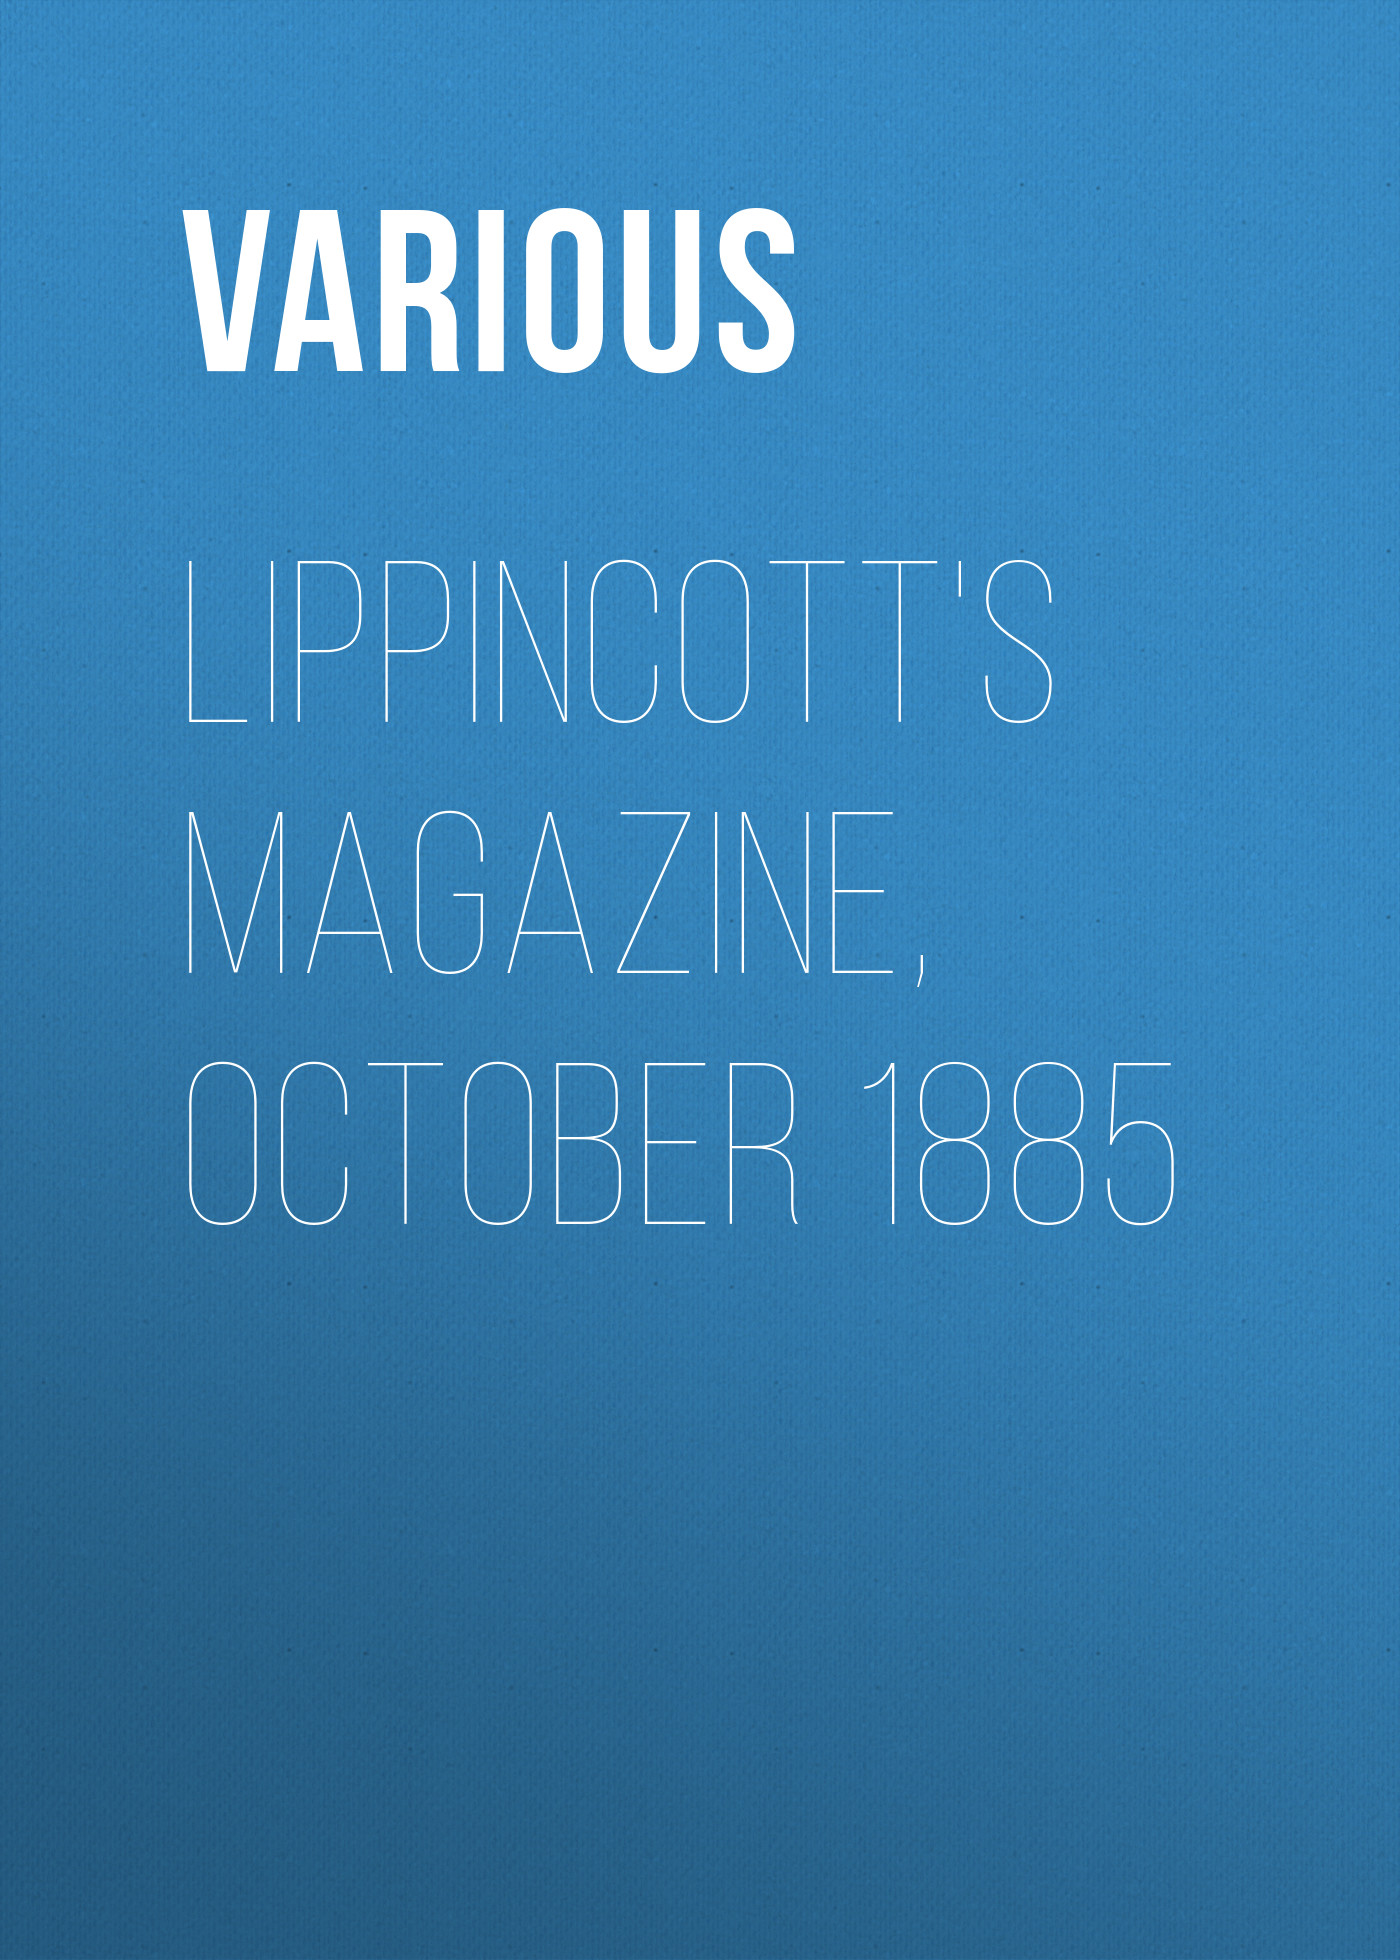 Various Lippincott's Magazine, October 1885 october